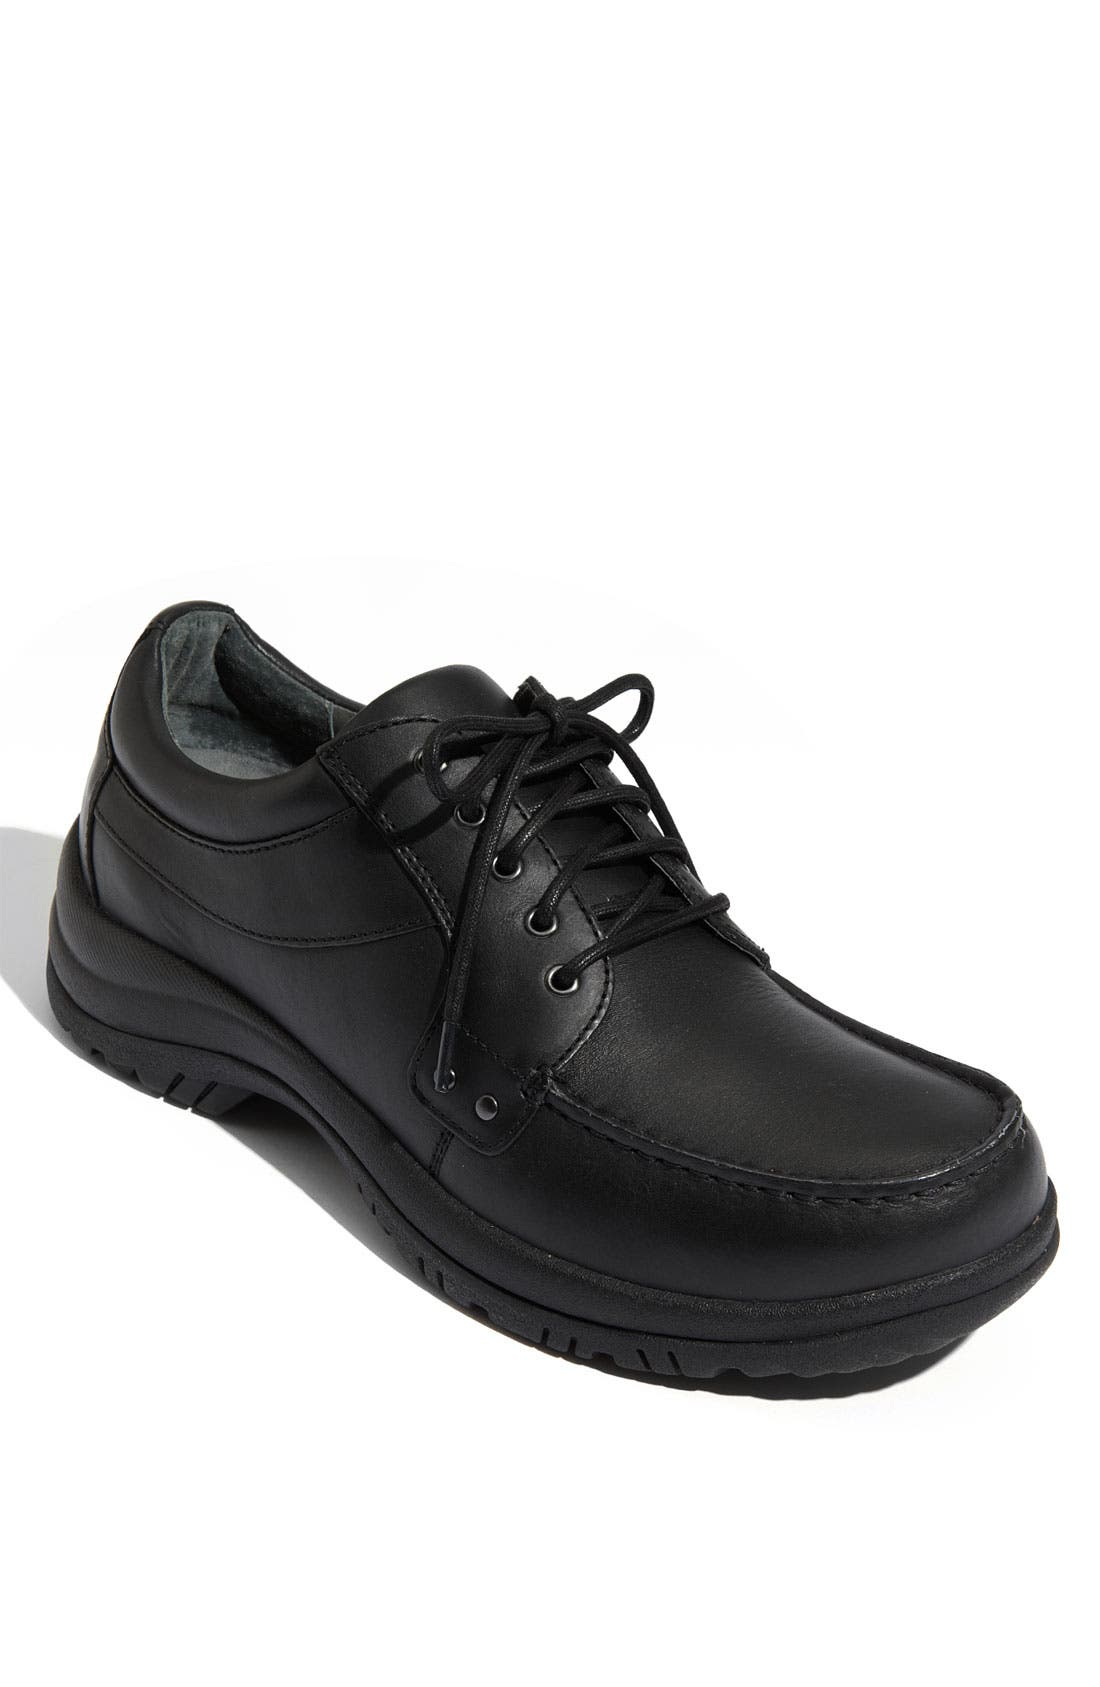 DANSKO Wyatt Oxford